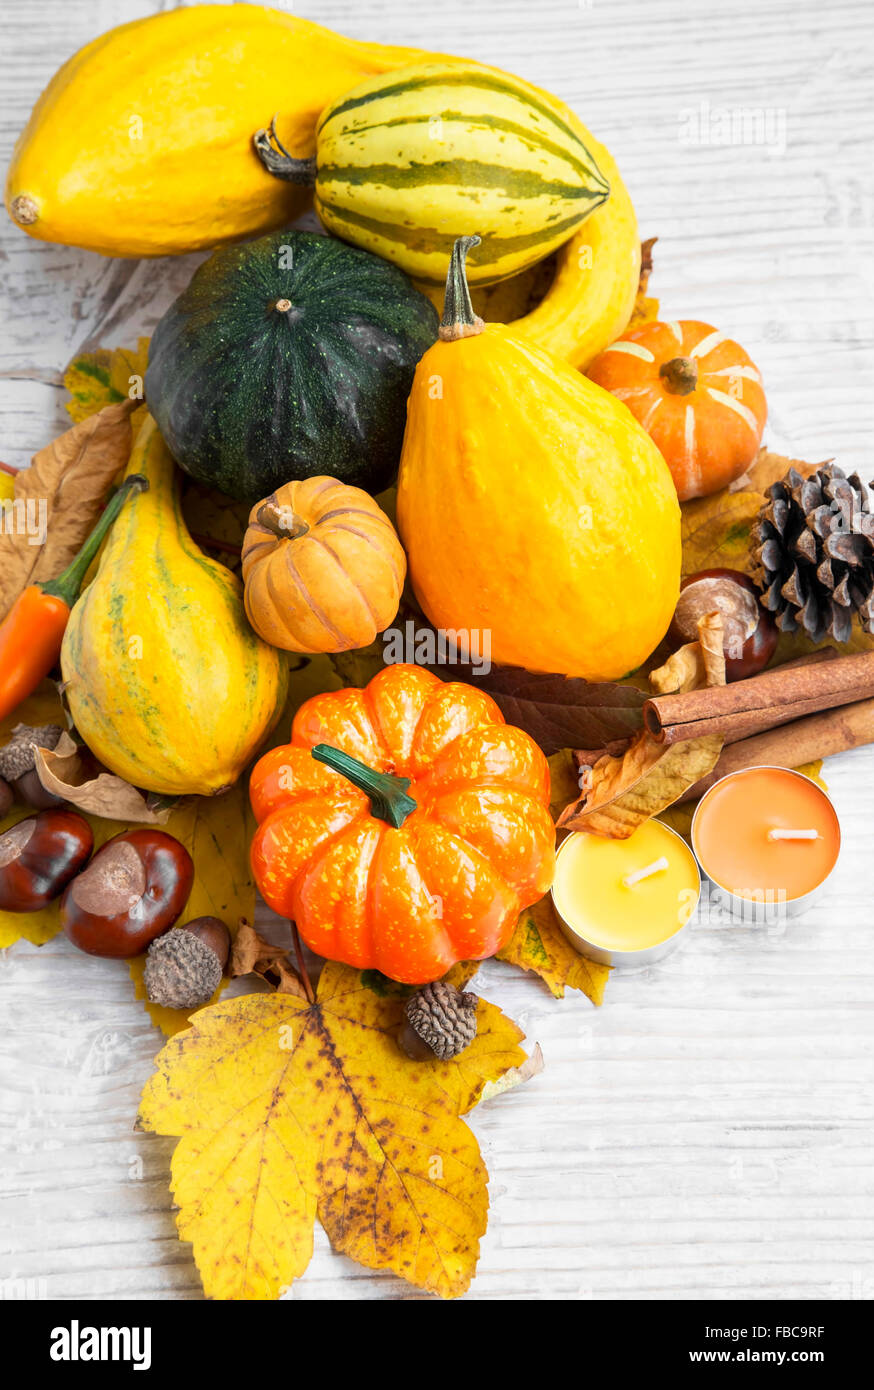 Autumn Pumpkins Assortment with Autumn Leaves, Chestnuts,Cinnamon and Acorns - Stock Image